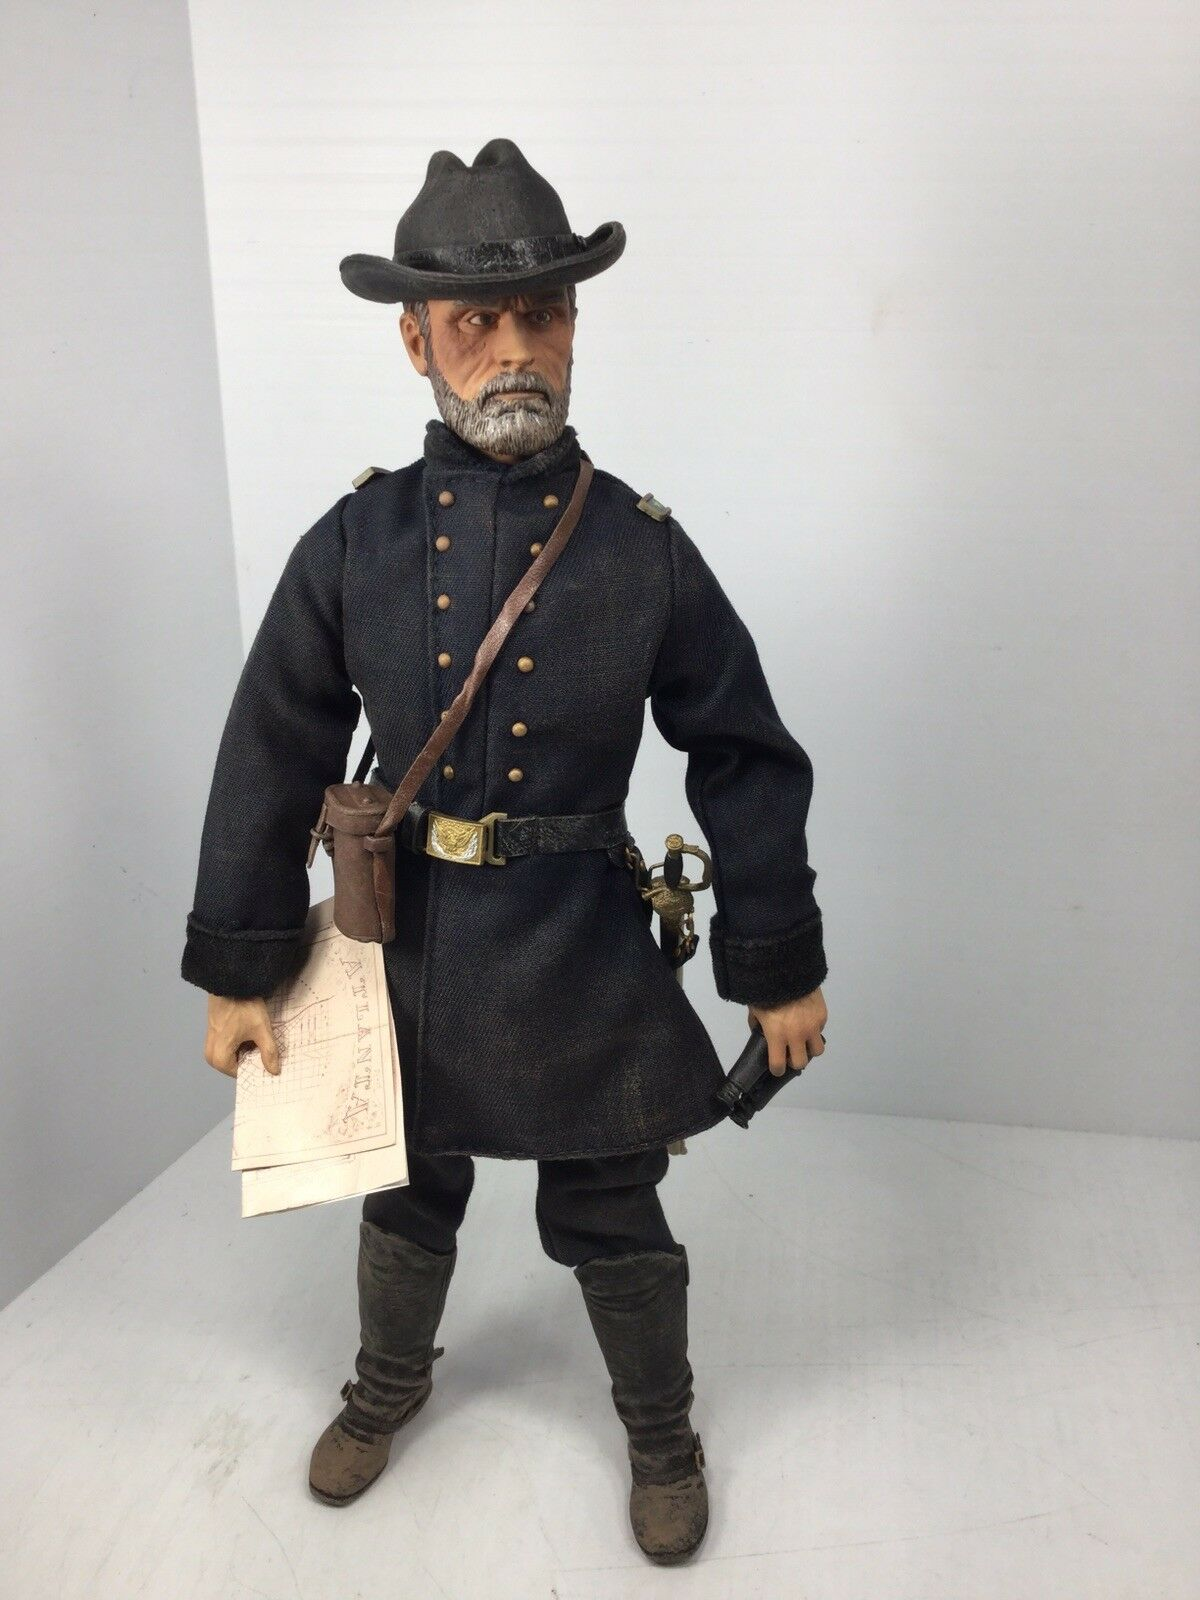 1 6 SIDESHOW UNION CIVIL WAR MAJ GEN WILLIAM TECUMSEH SHERMAN DRAGON BBI DID 21